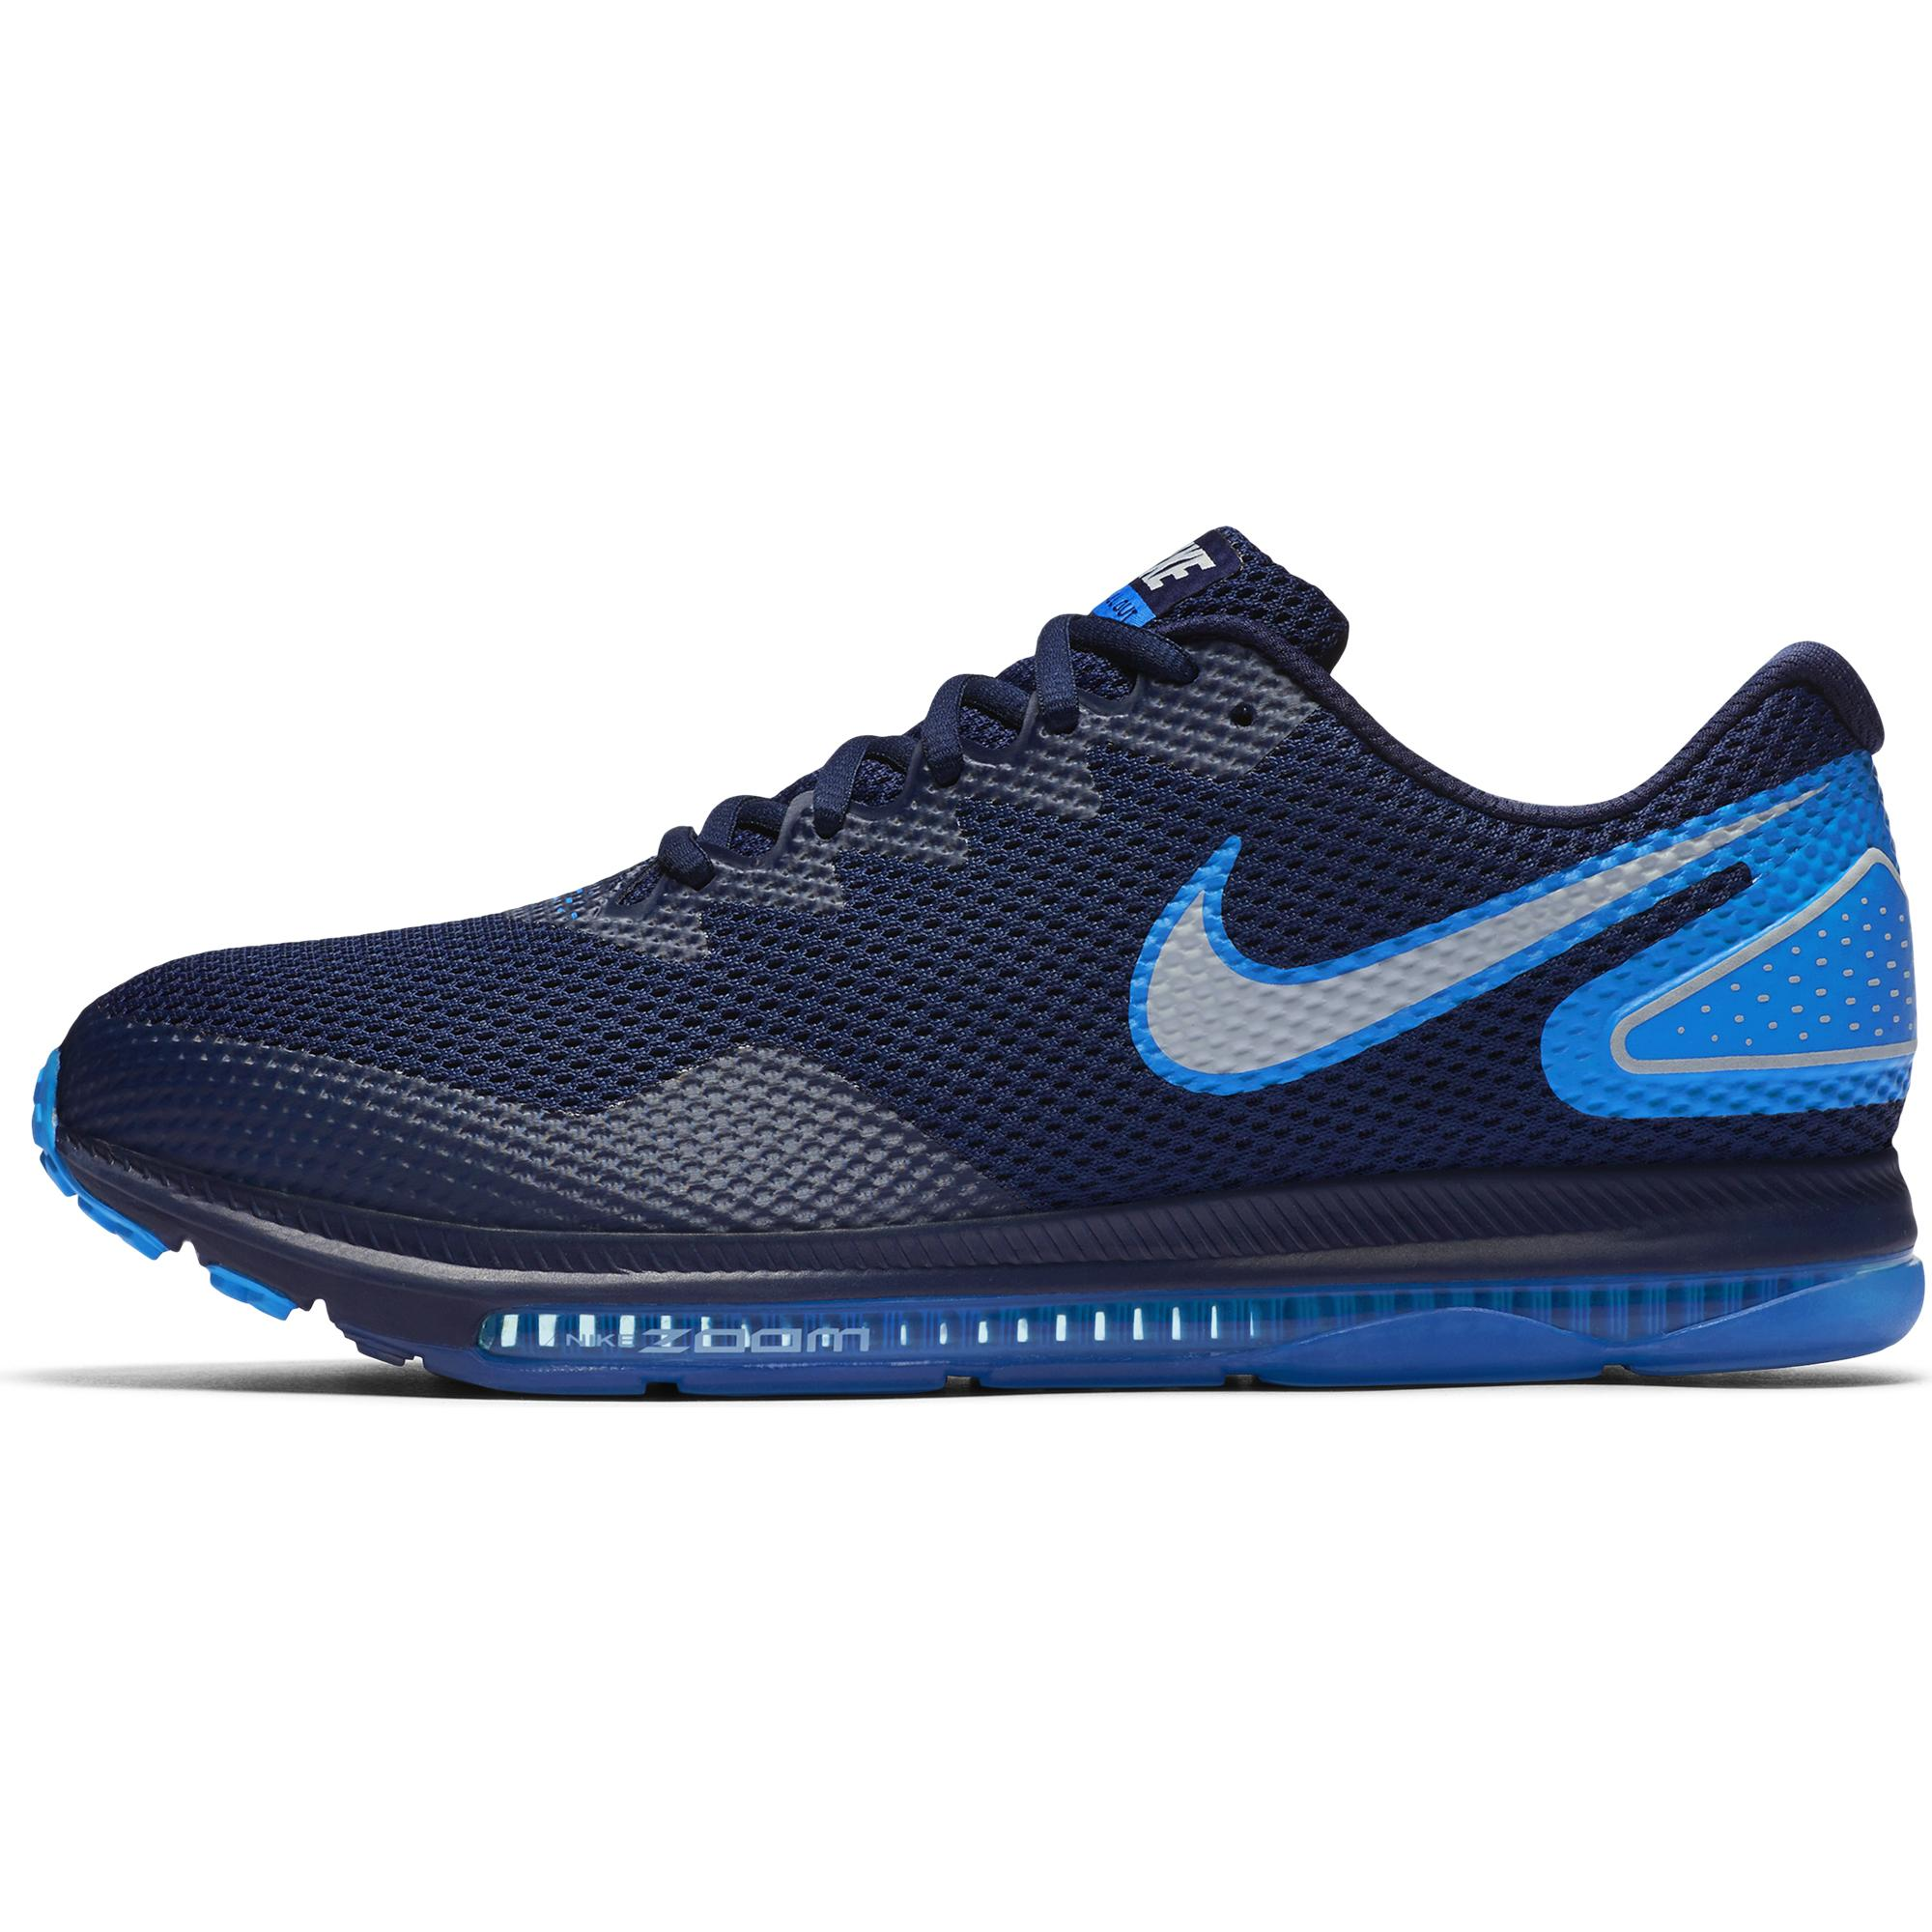 b966b8d45006c Nike Shoes Zoom All Out Low 2 Midnight Navy photo Blue-pure Platinum -  Tifoshop.com